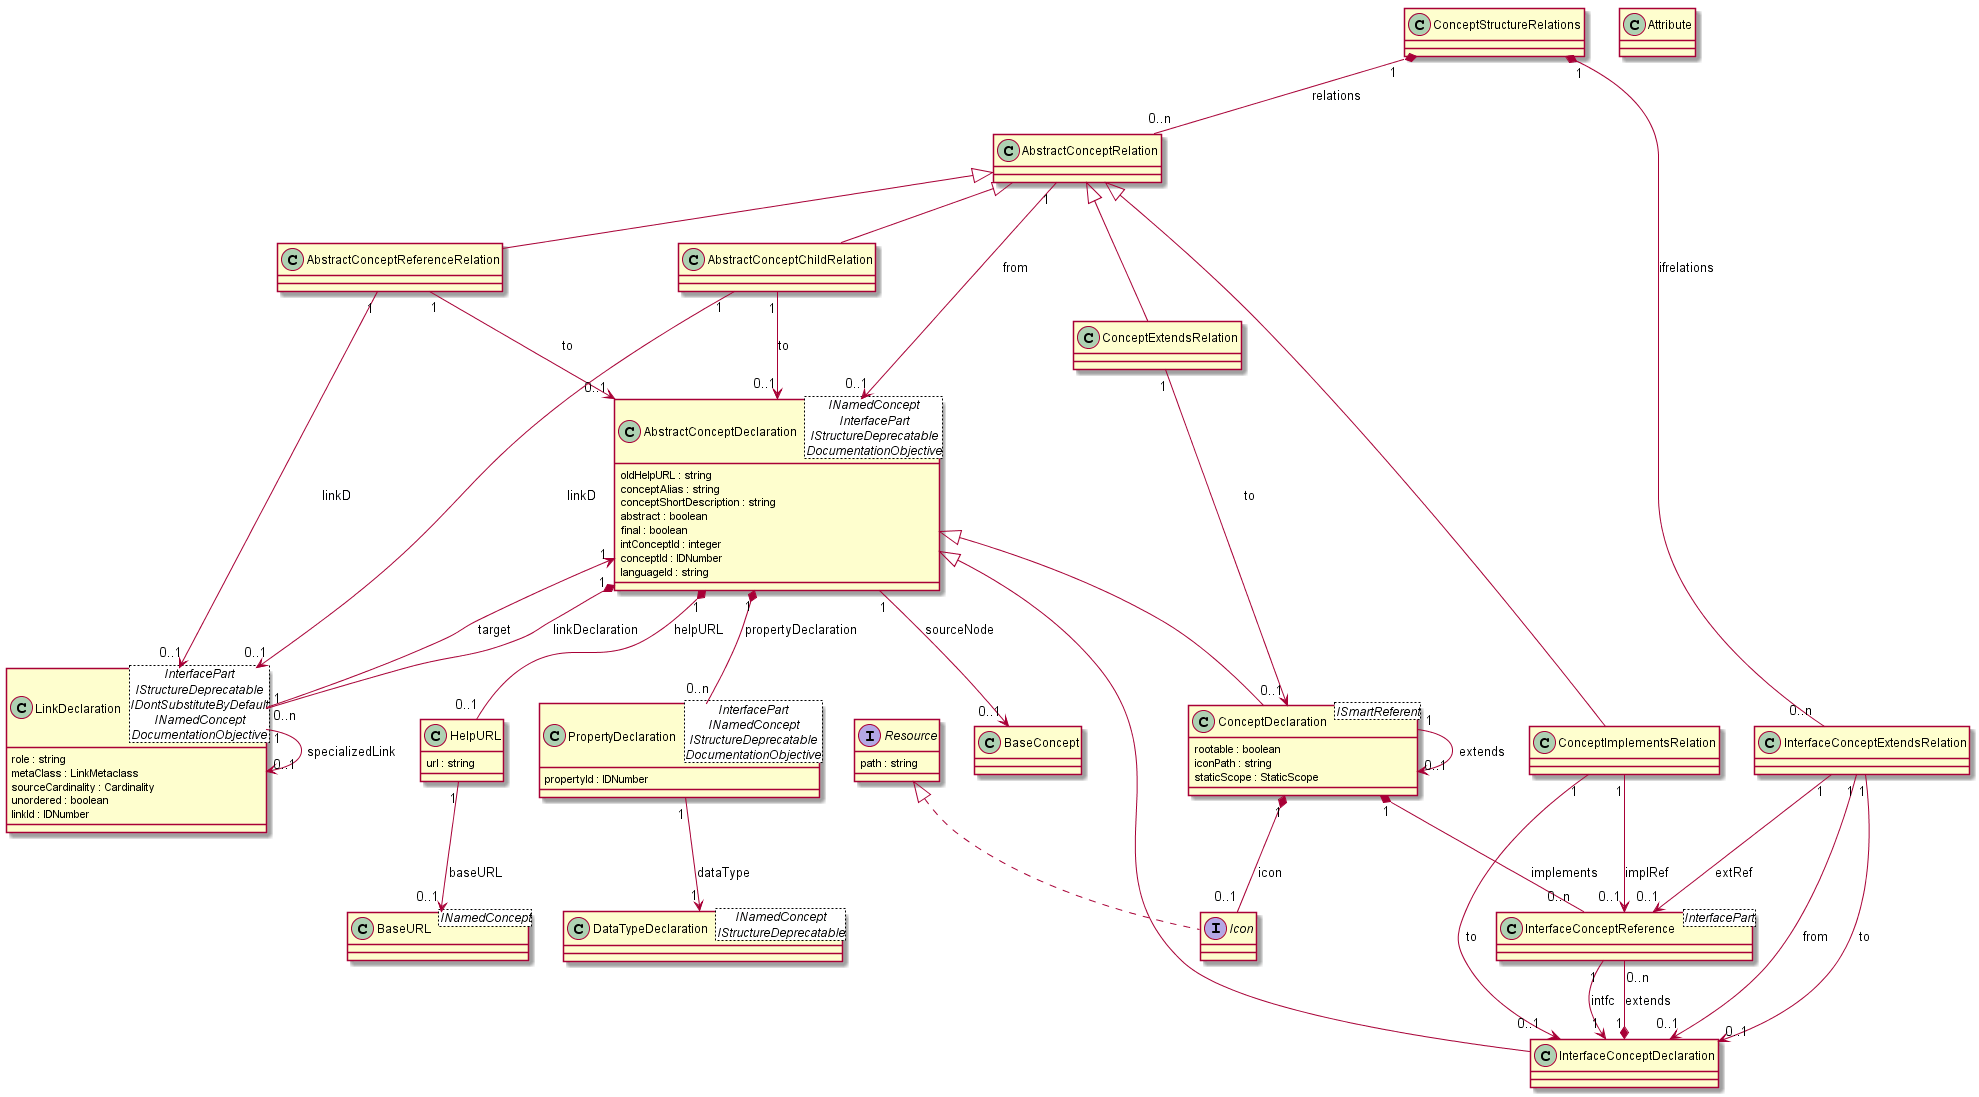 hight resolution of just to highlight what the above language design is about the conceptstructurerelations diagram contains relations of concept abstractconceptrelation and